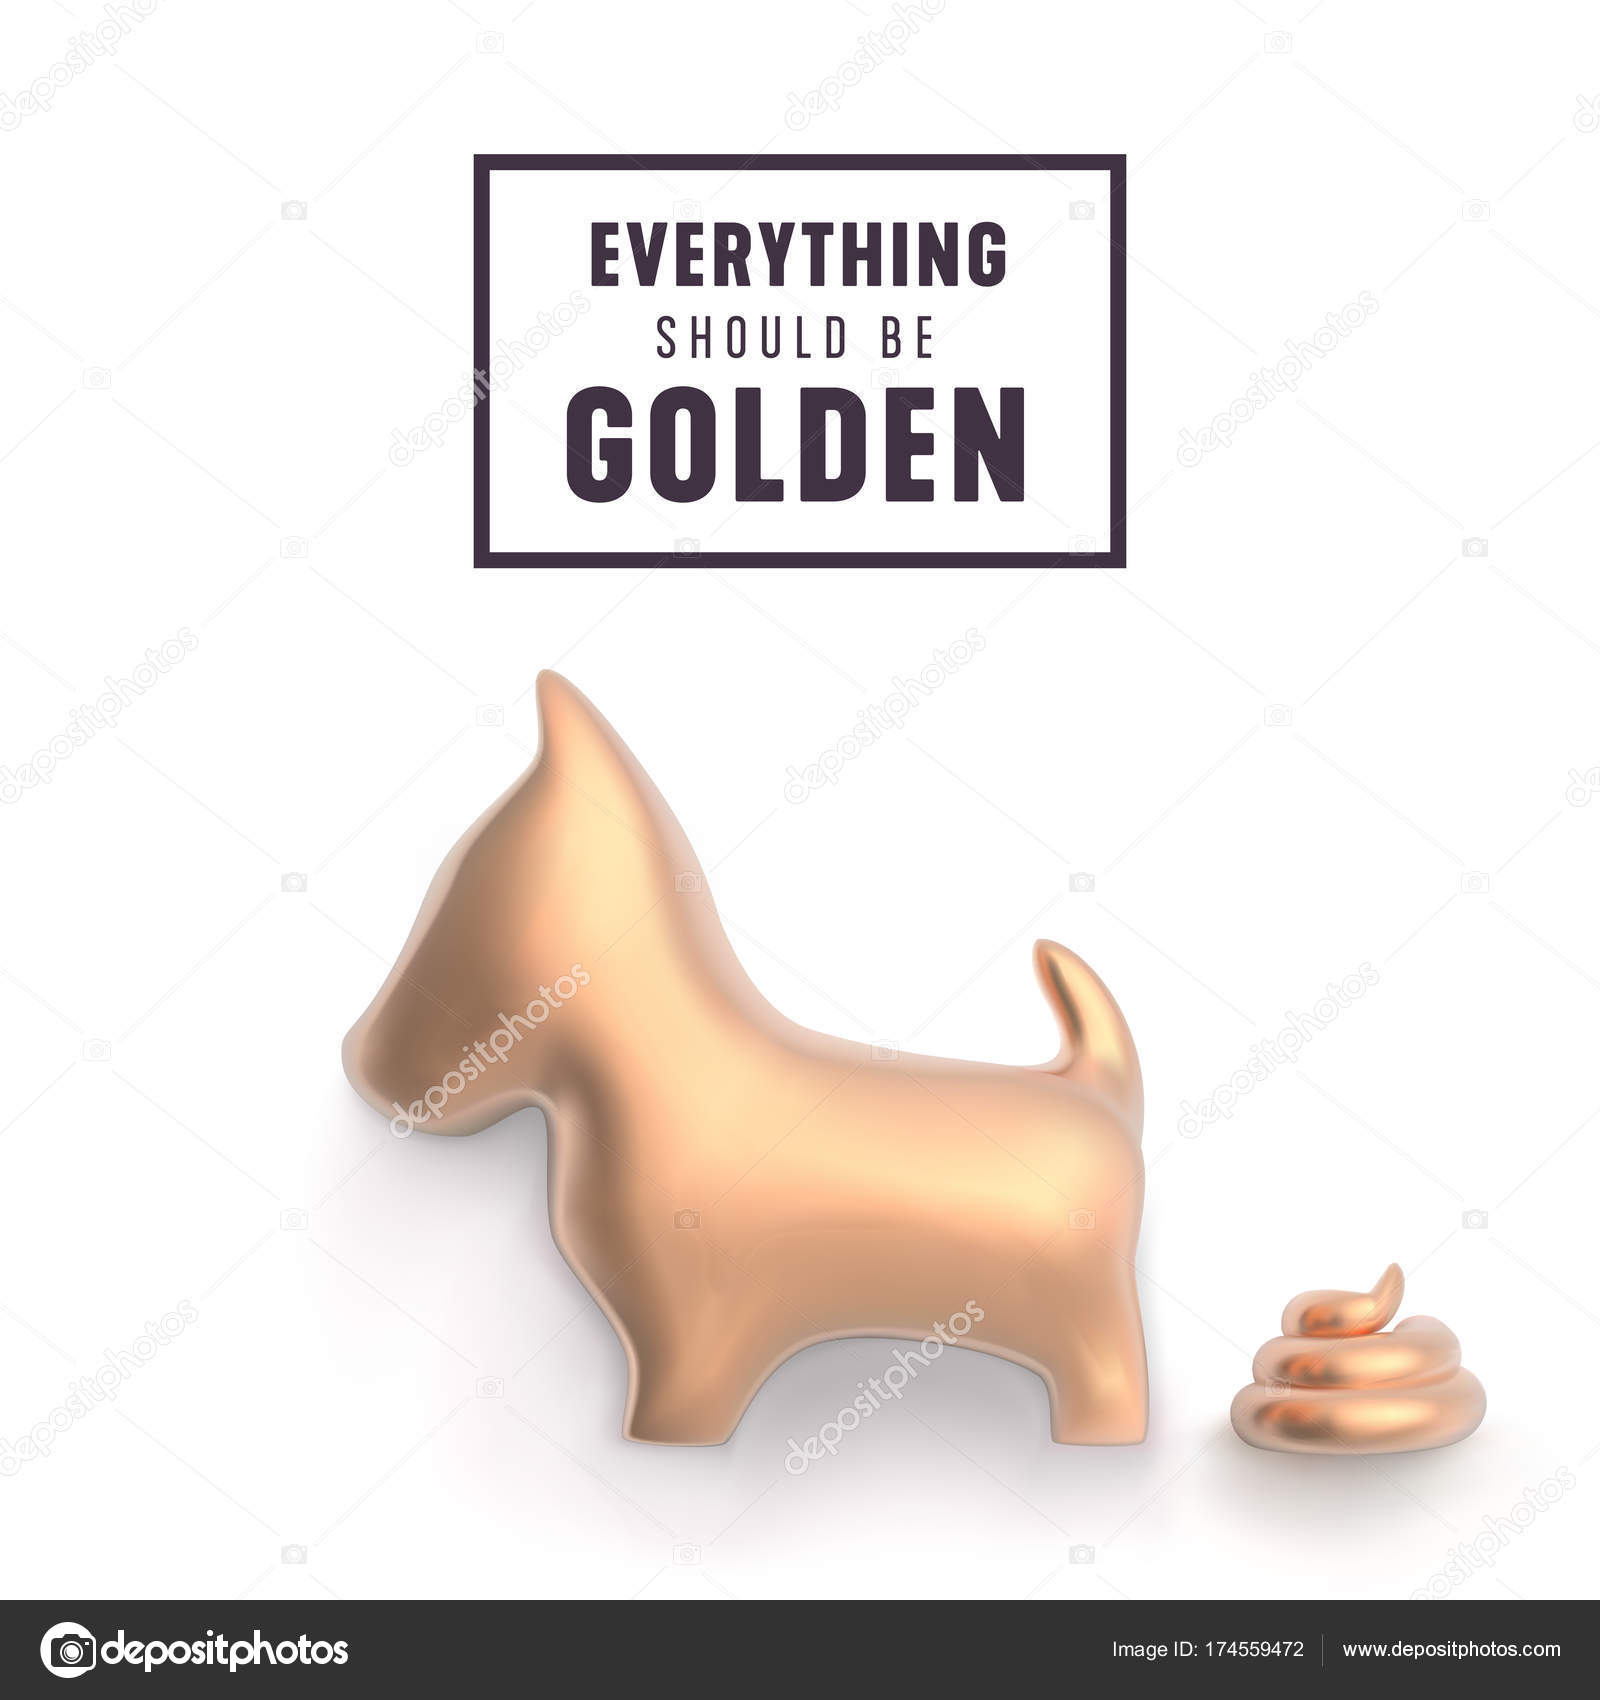 Gold Dog And Poop For Funny New Year Greetings Vector Illustrat